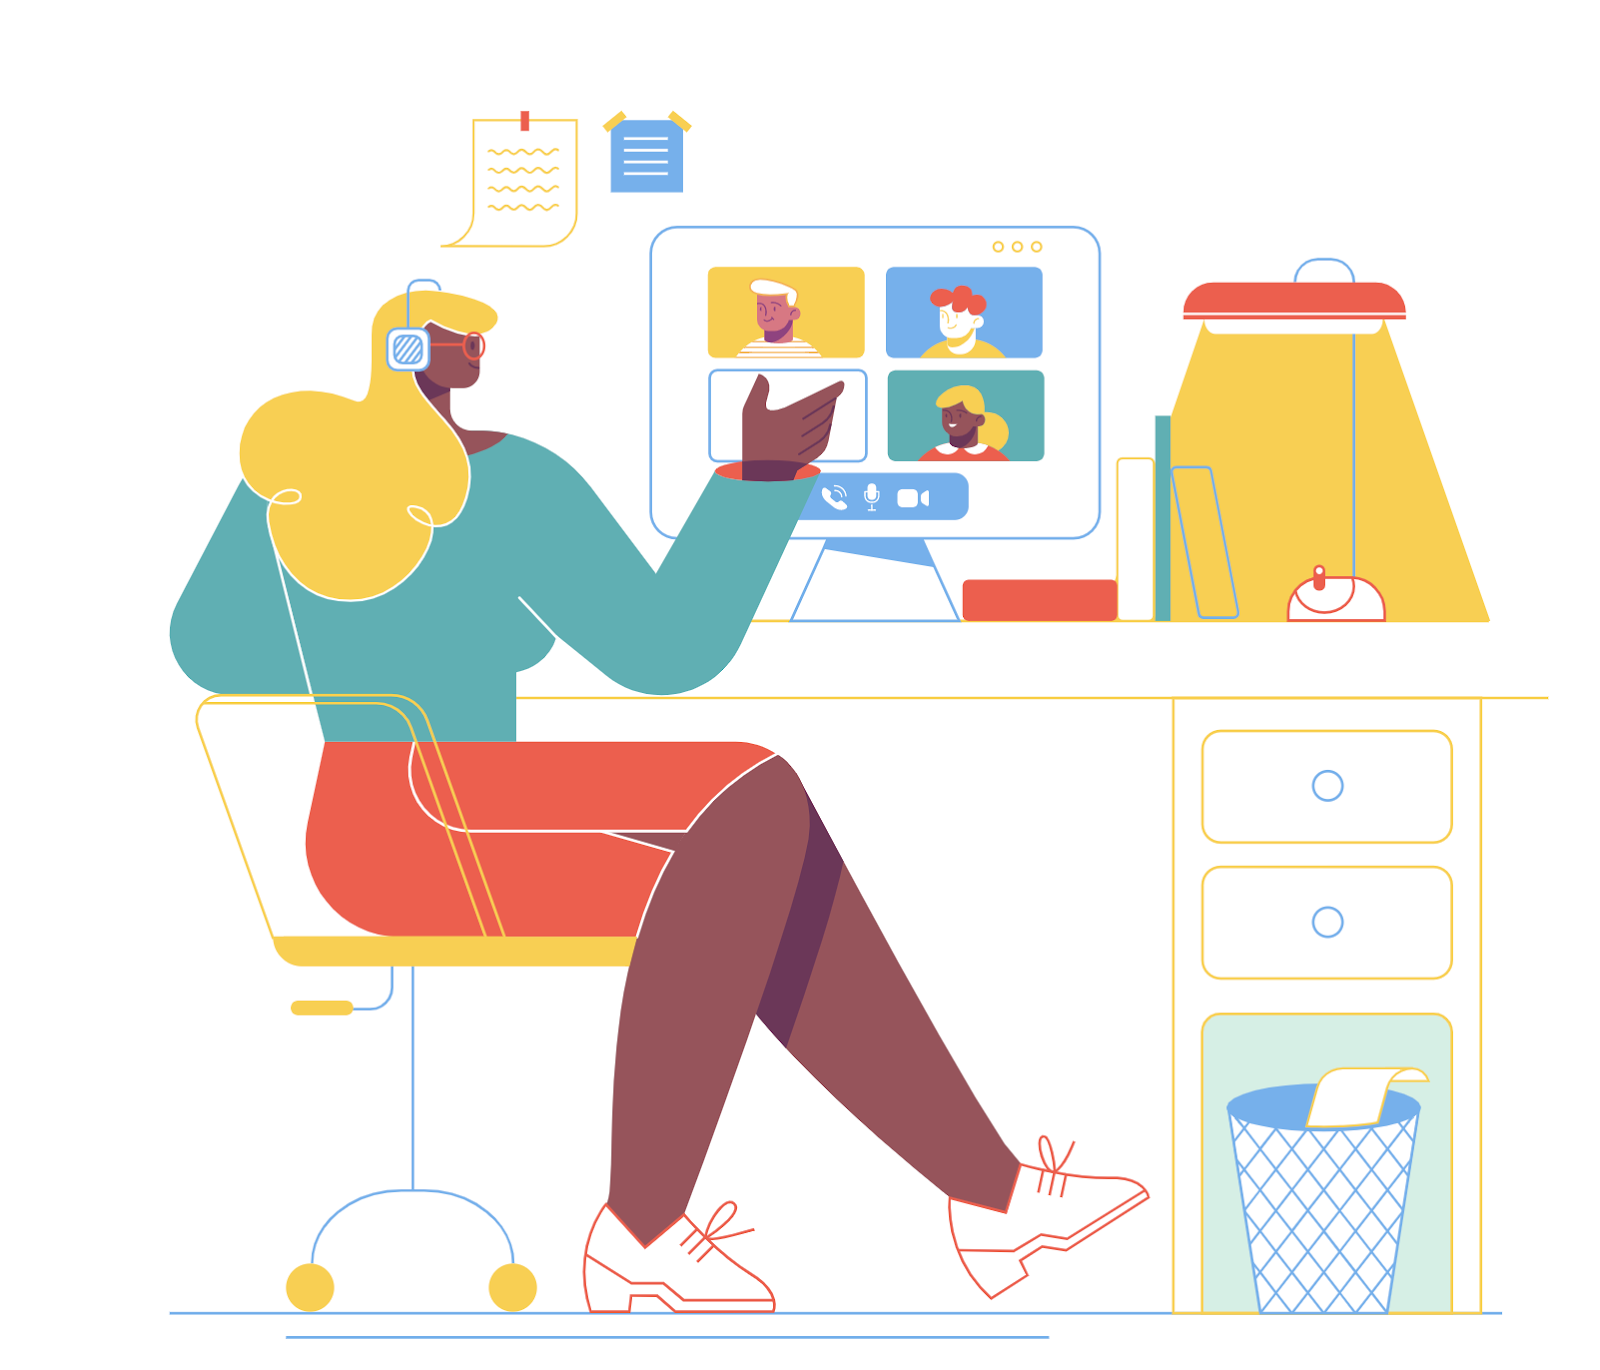 With 2020, lifestyles have taken a digital shift. Everything is remote and online, which means communication and buyer decisions are more frequent and more digitalized.